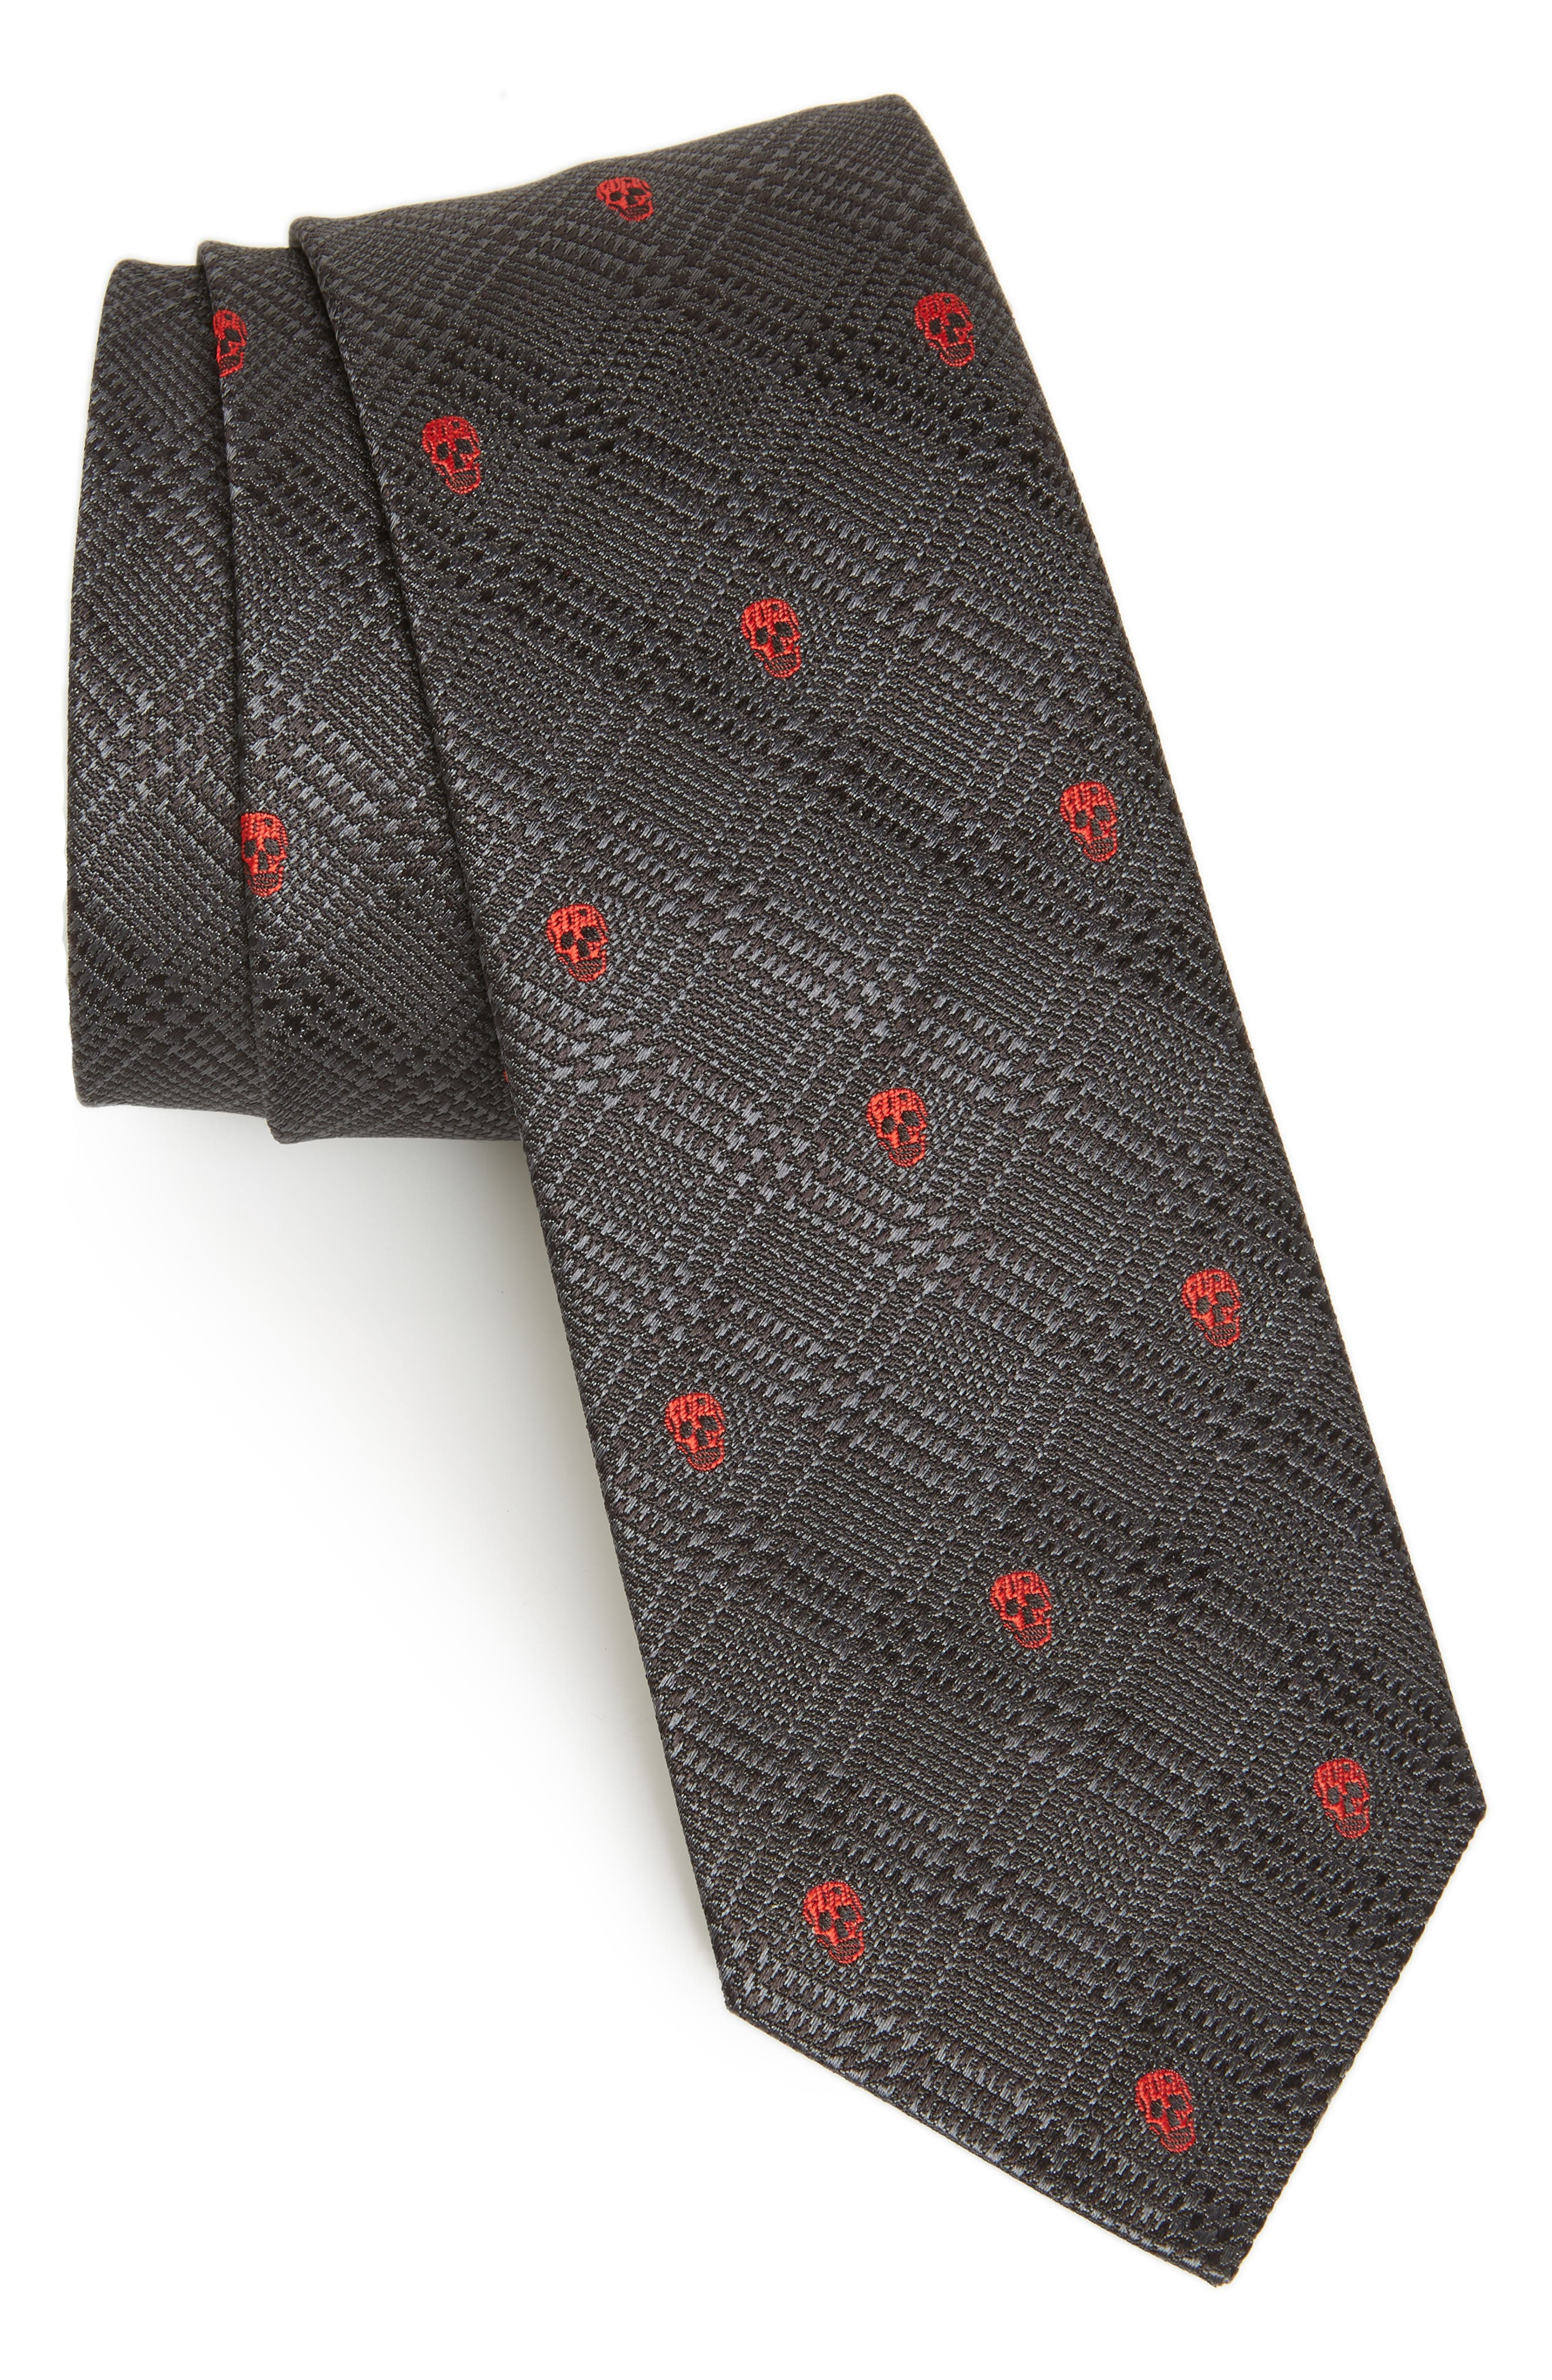 Woven Silk Tie,                             Main thumbnail 1, color,                             BLACK AND RED